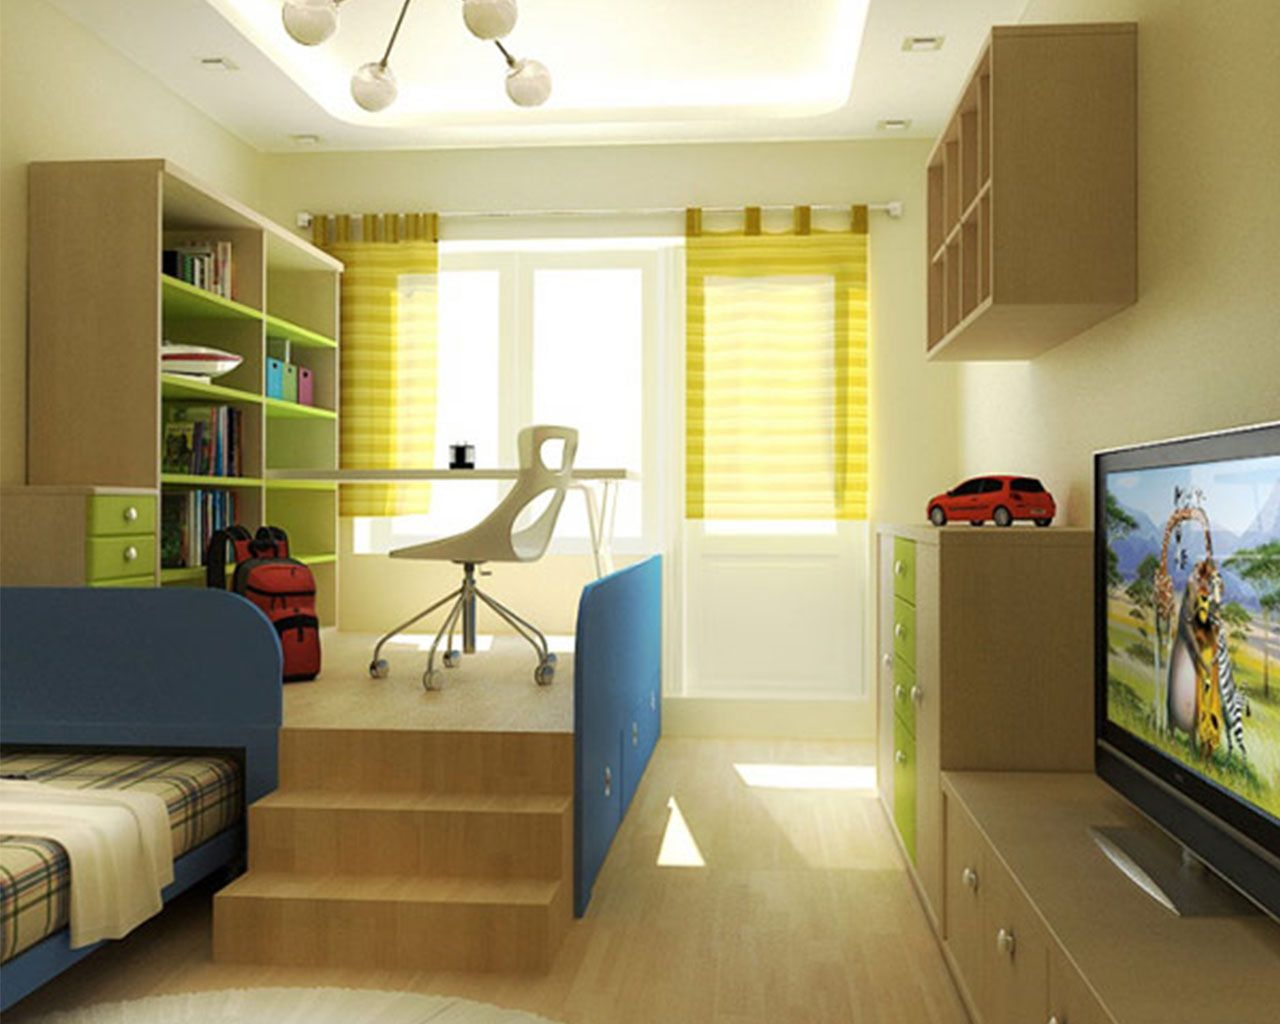 Remodel Your Cool Teen Bedrooms on a Budget | Awesome Home ...